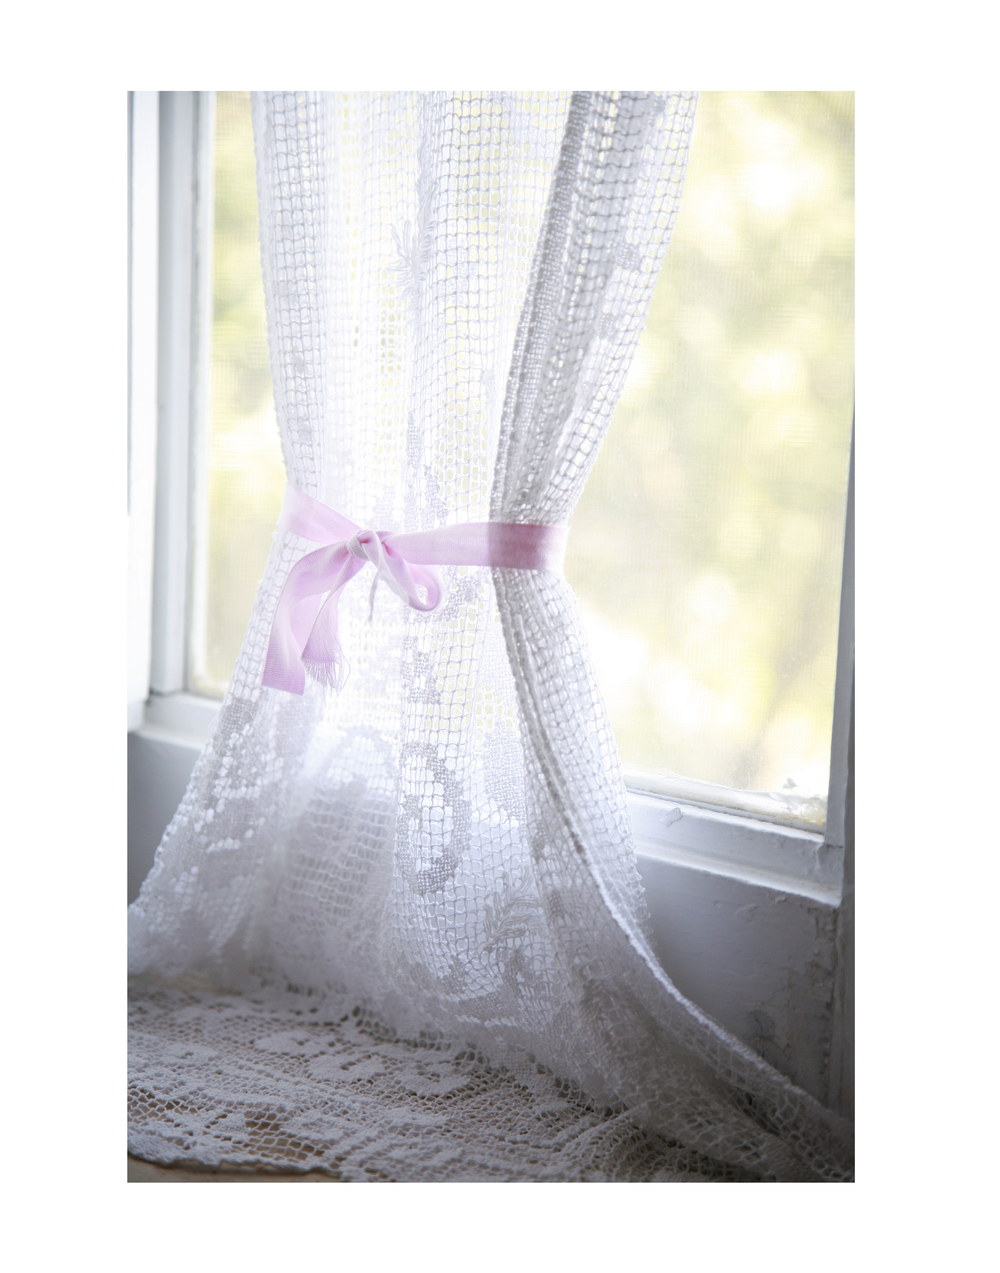 Lace Window.jpg